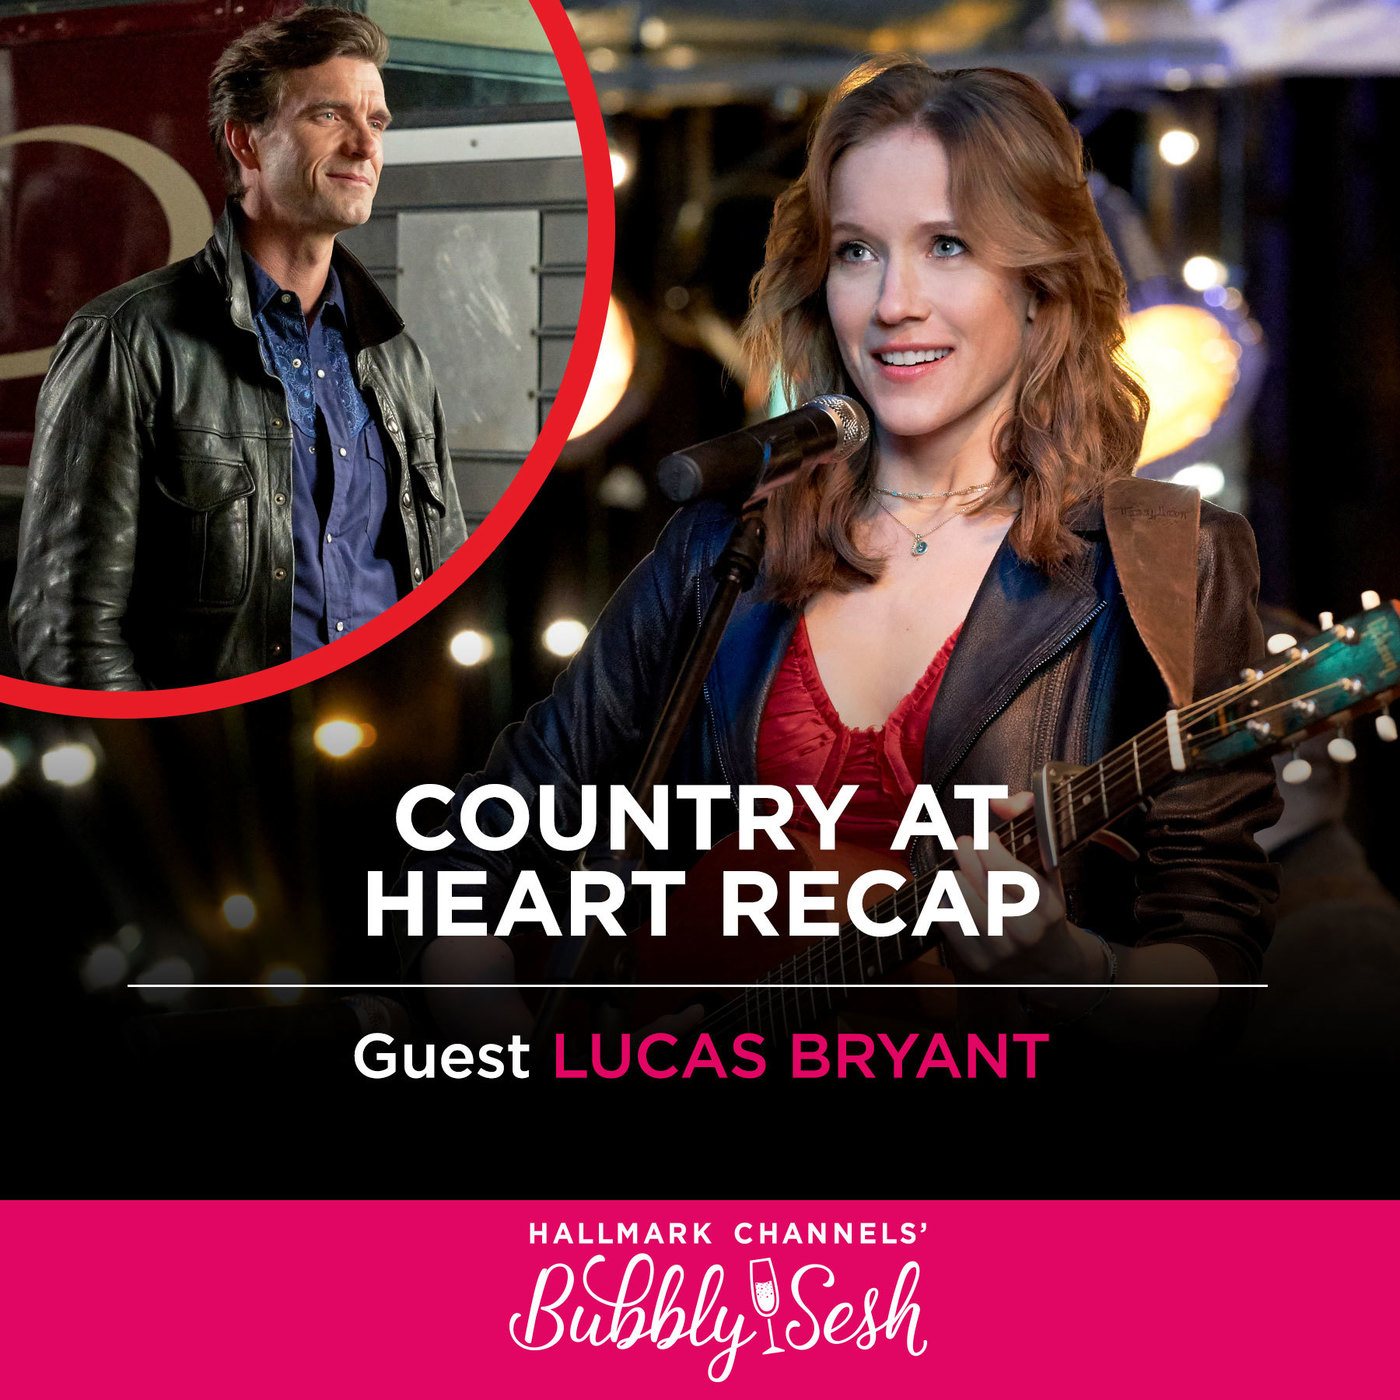 Country at Heart Recap with Guest Lucas Bryant